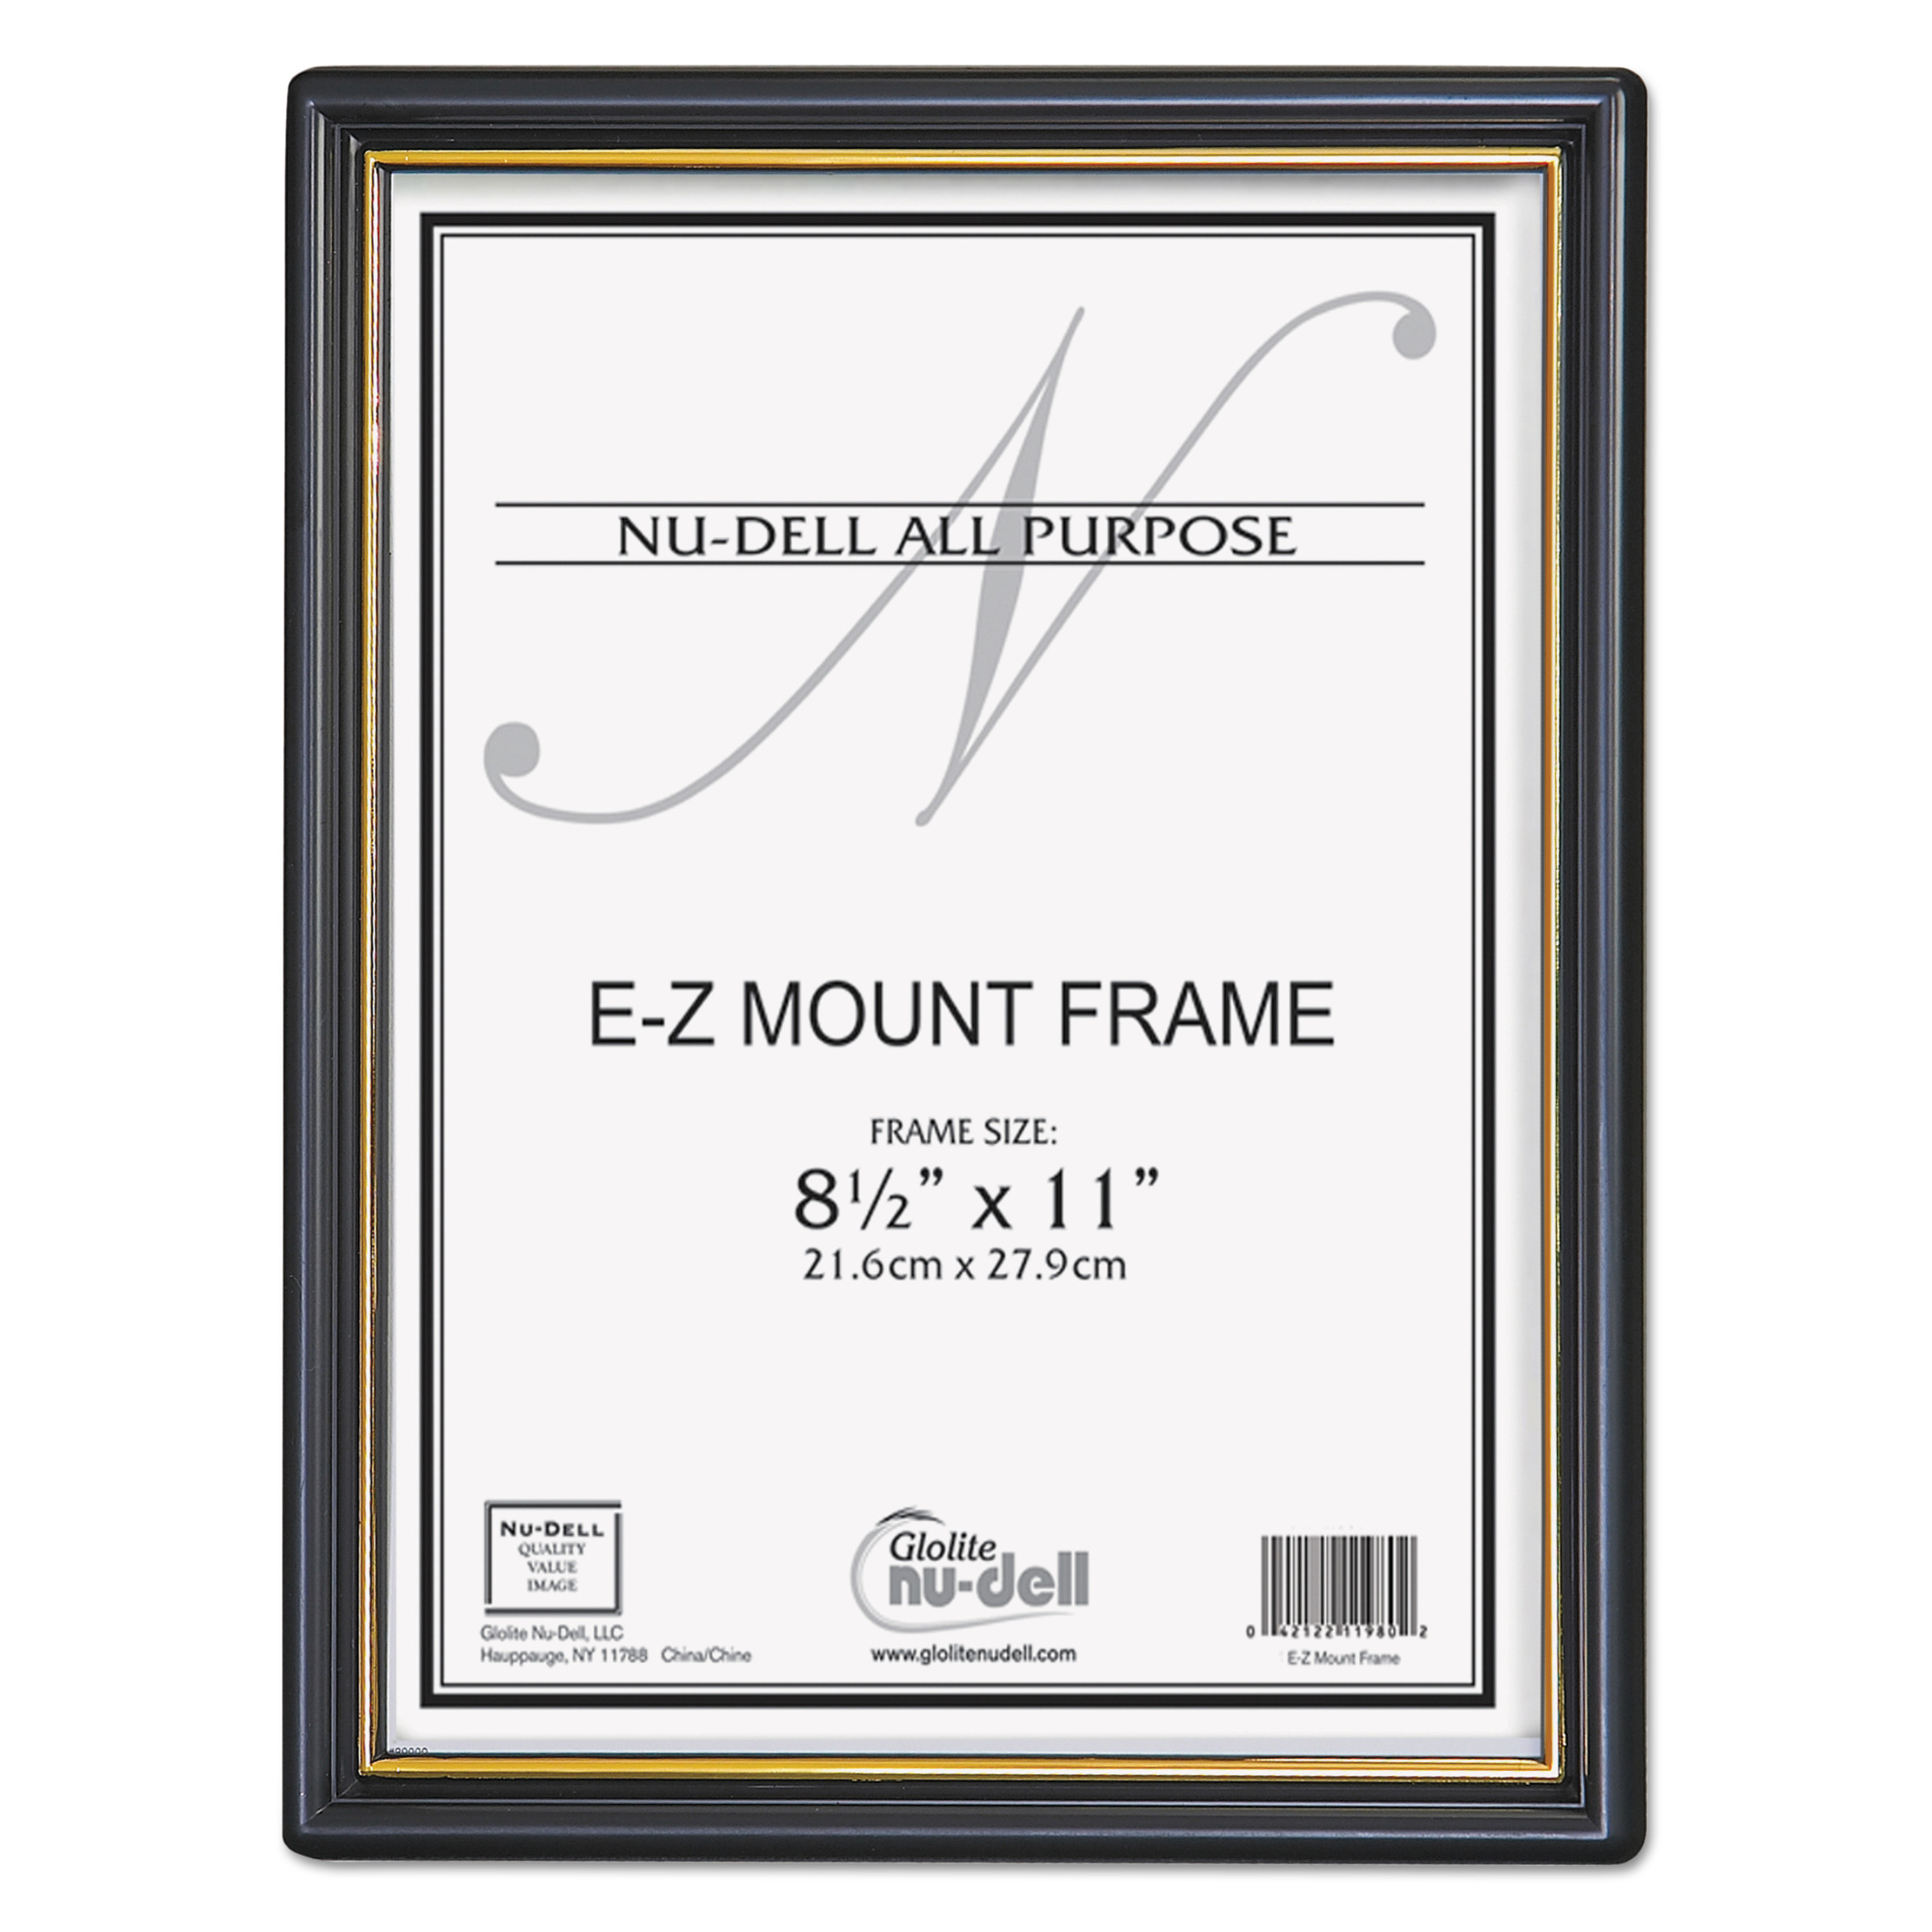 NuDell EZ Mount Document Frame with Trim Accent, Plastic, 8-1/2 x 11, Black/Gold -NUD11880